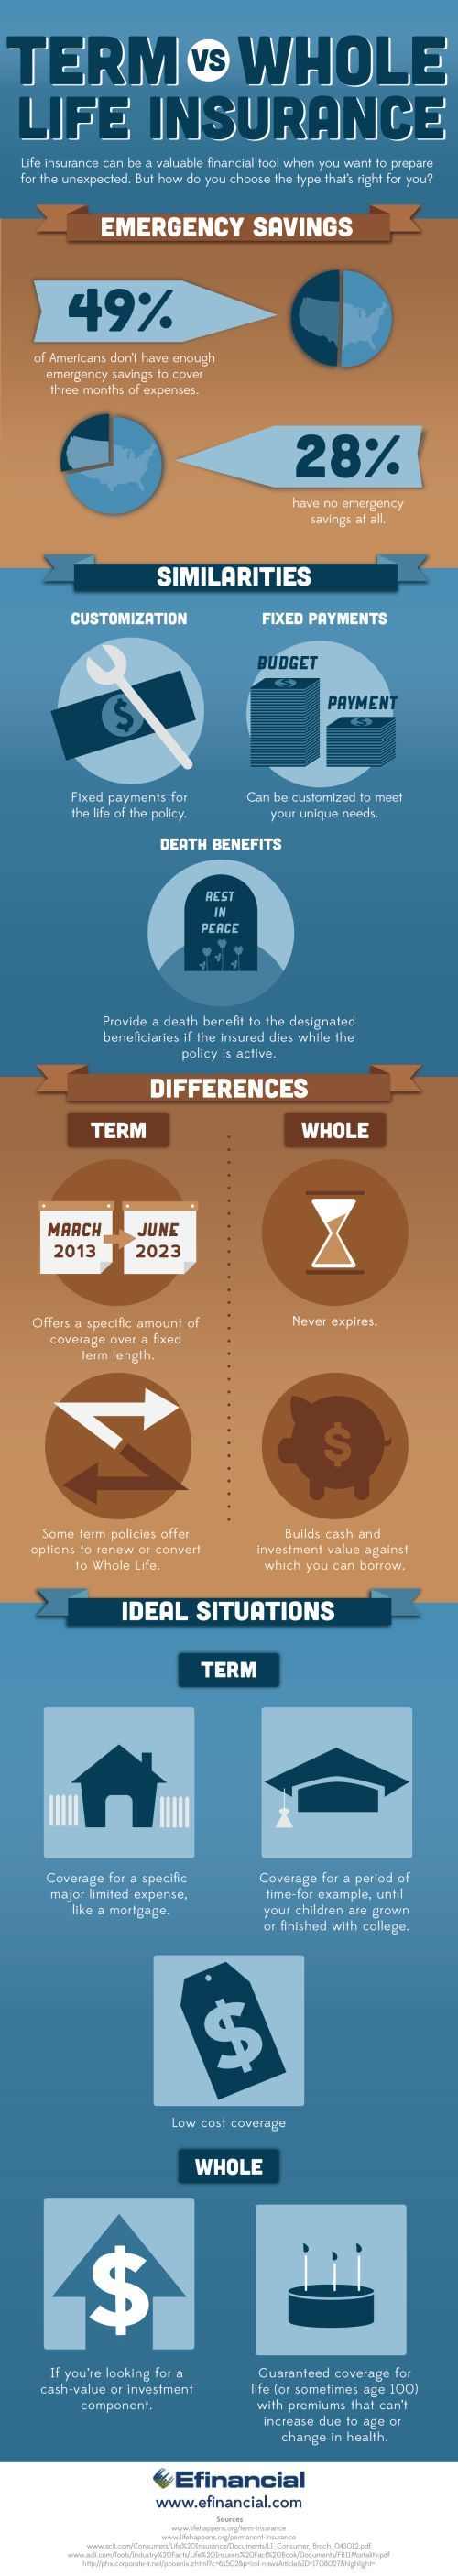 Term vs. Whole Life Insurance | Life Insurance Infographic | Efinancial